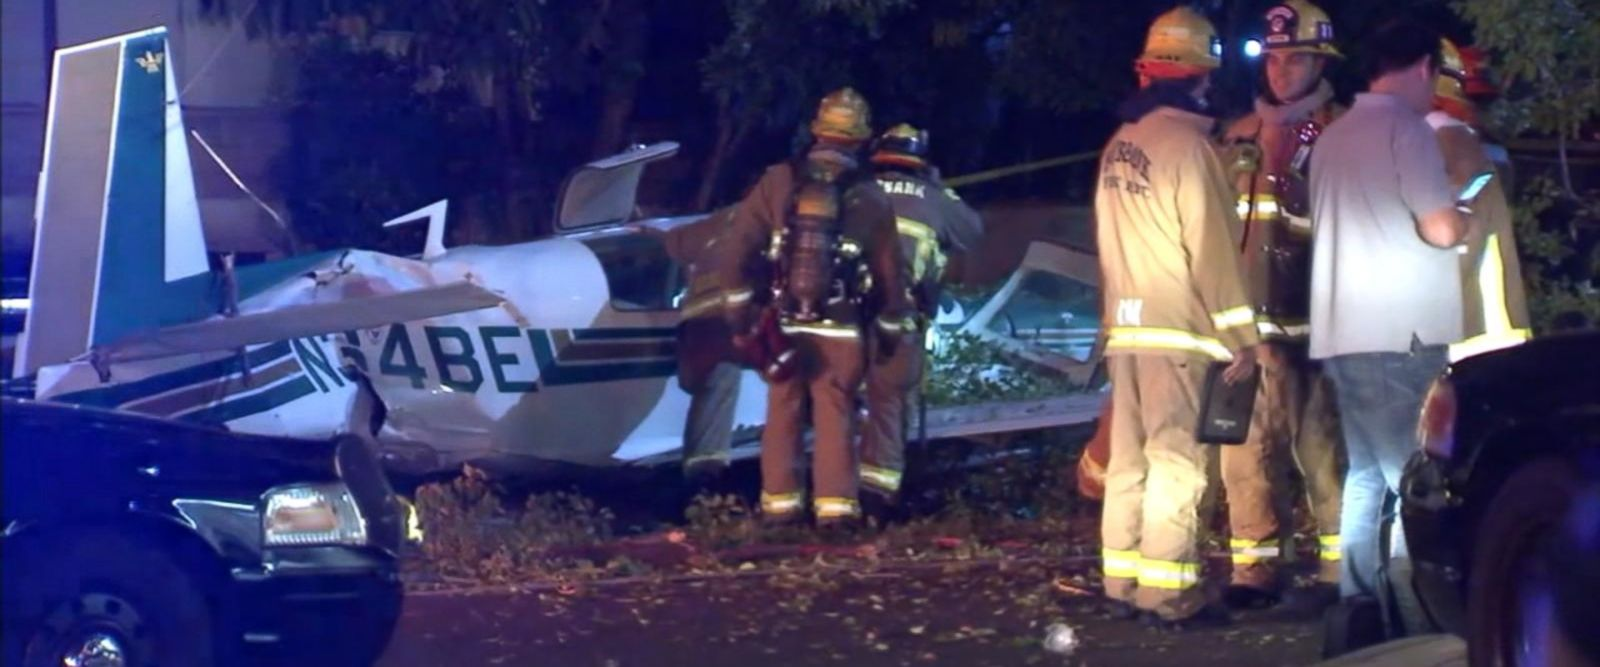 VIDEO: Plane makes crash landing on California street